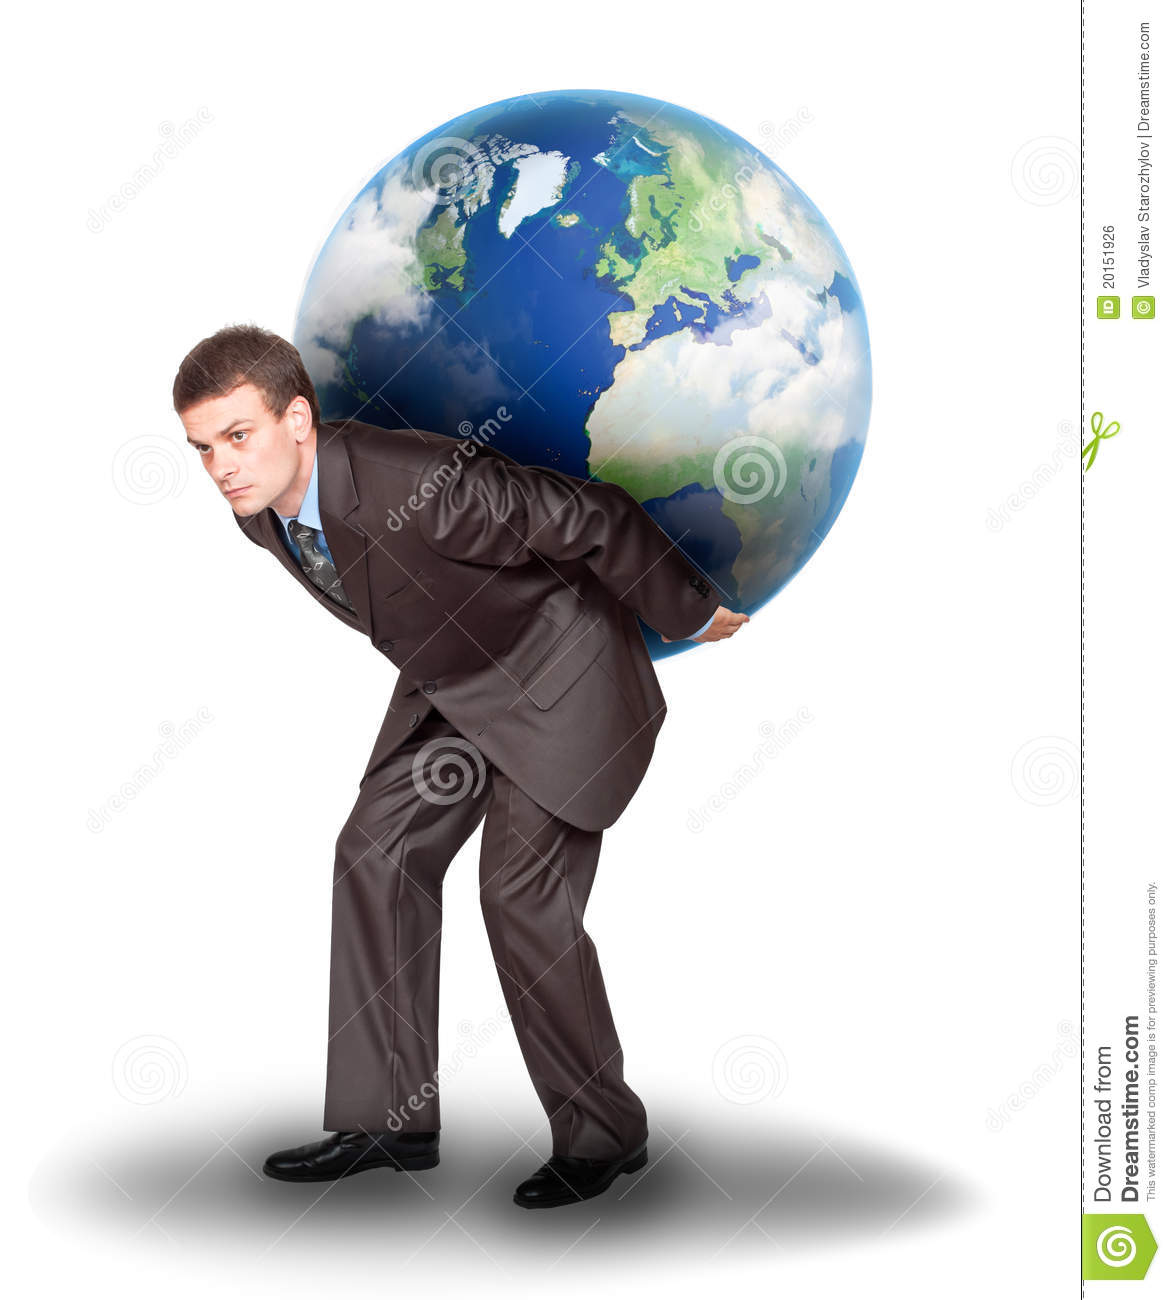 Businessman with the earth on his back